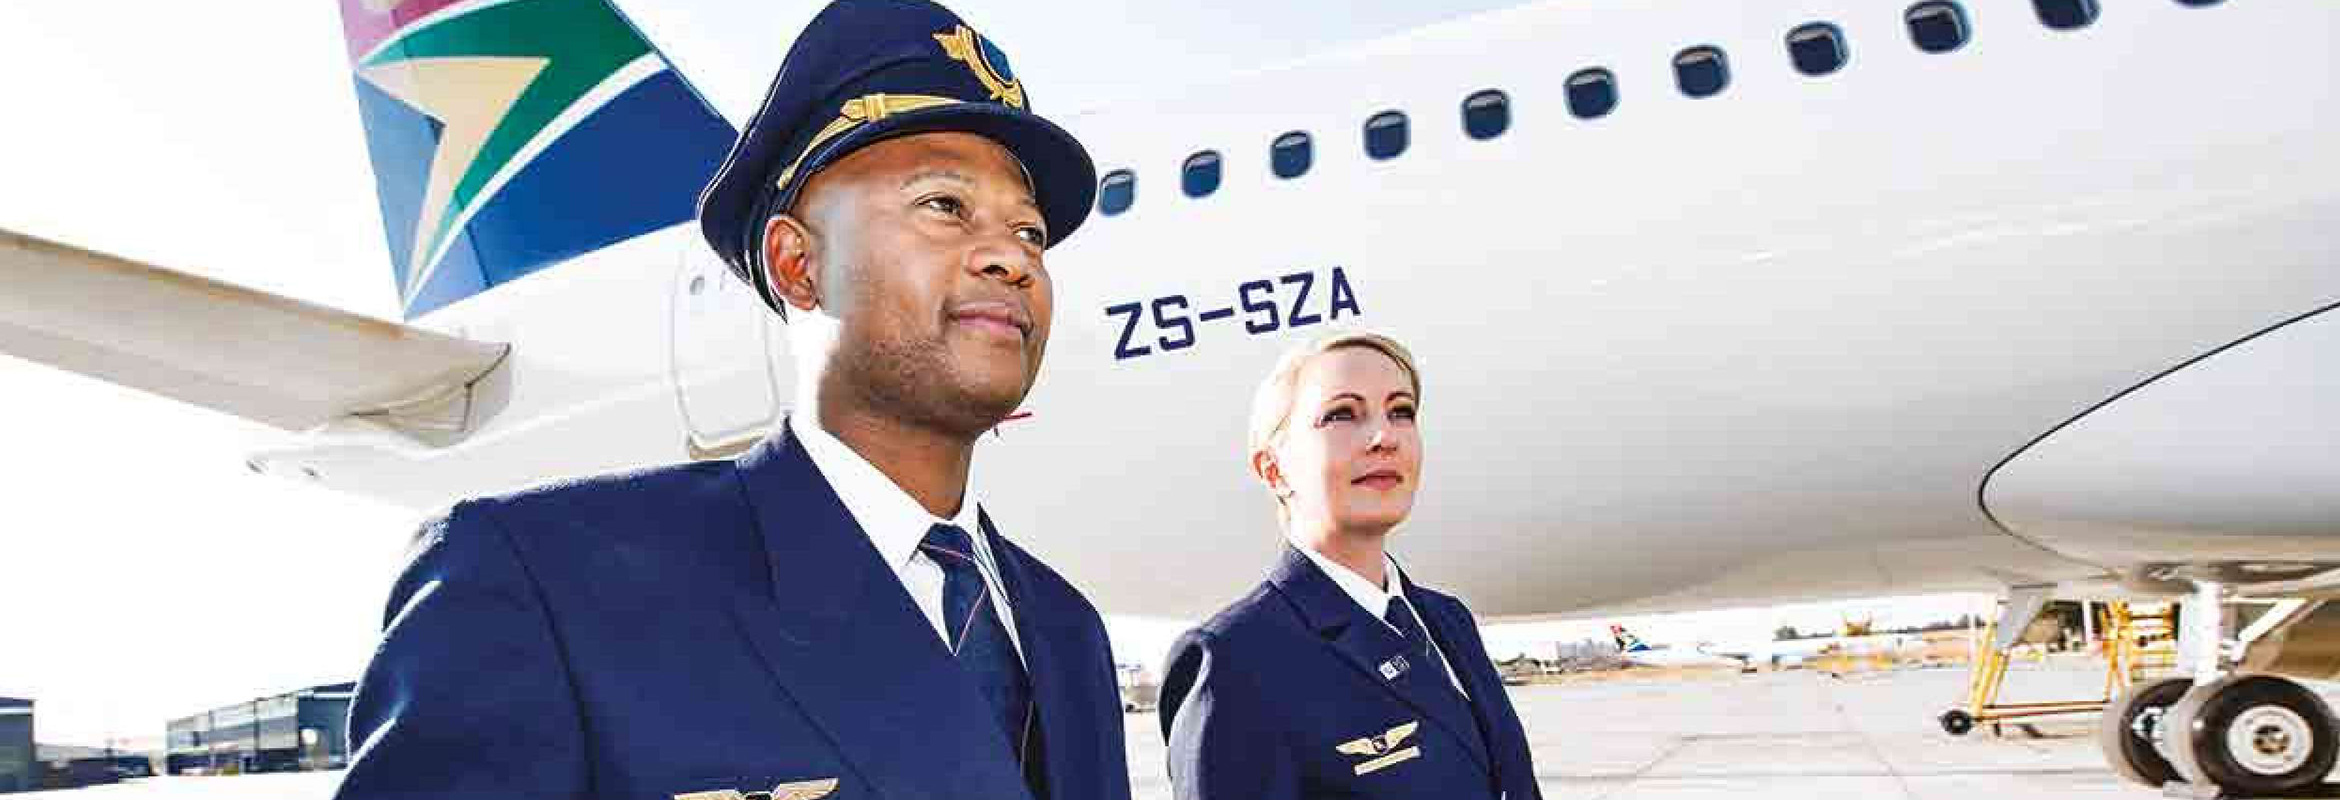 South African Airways announcements